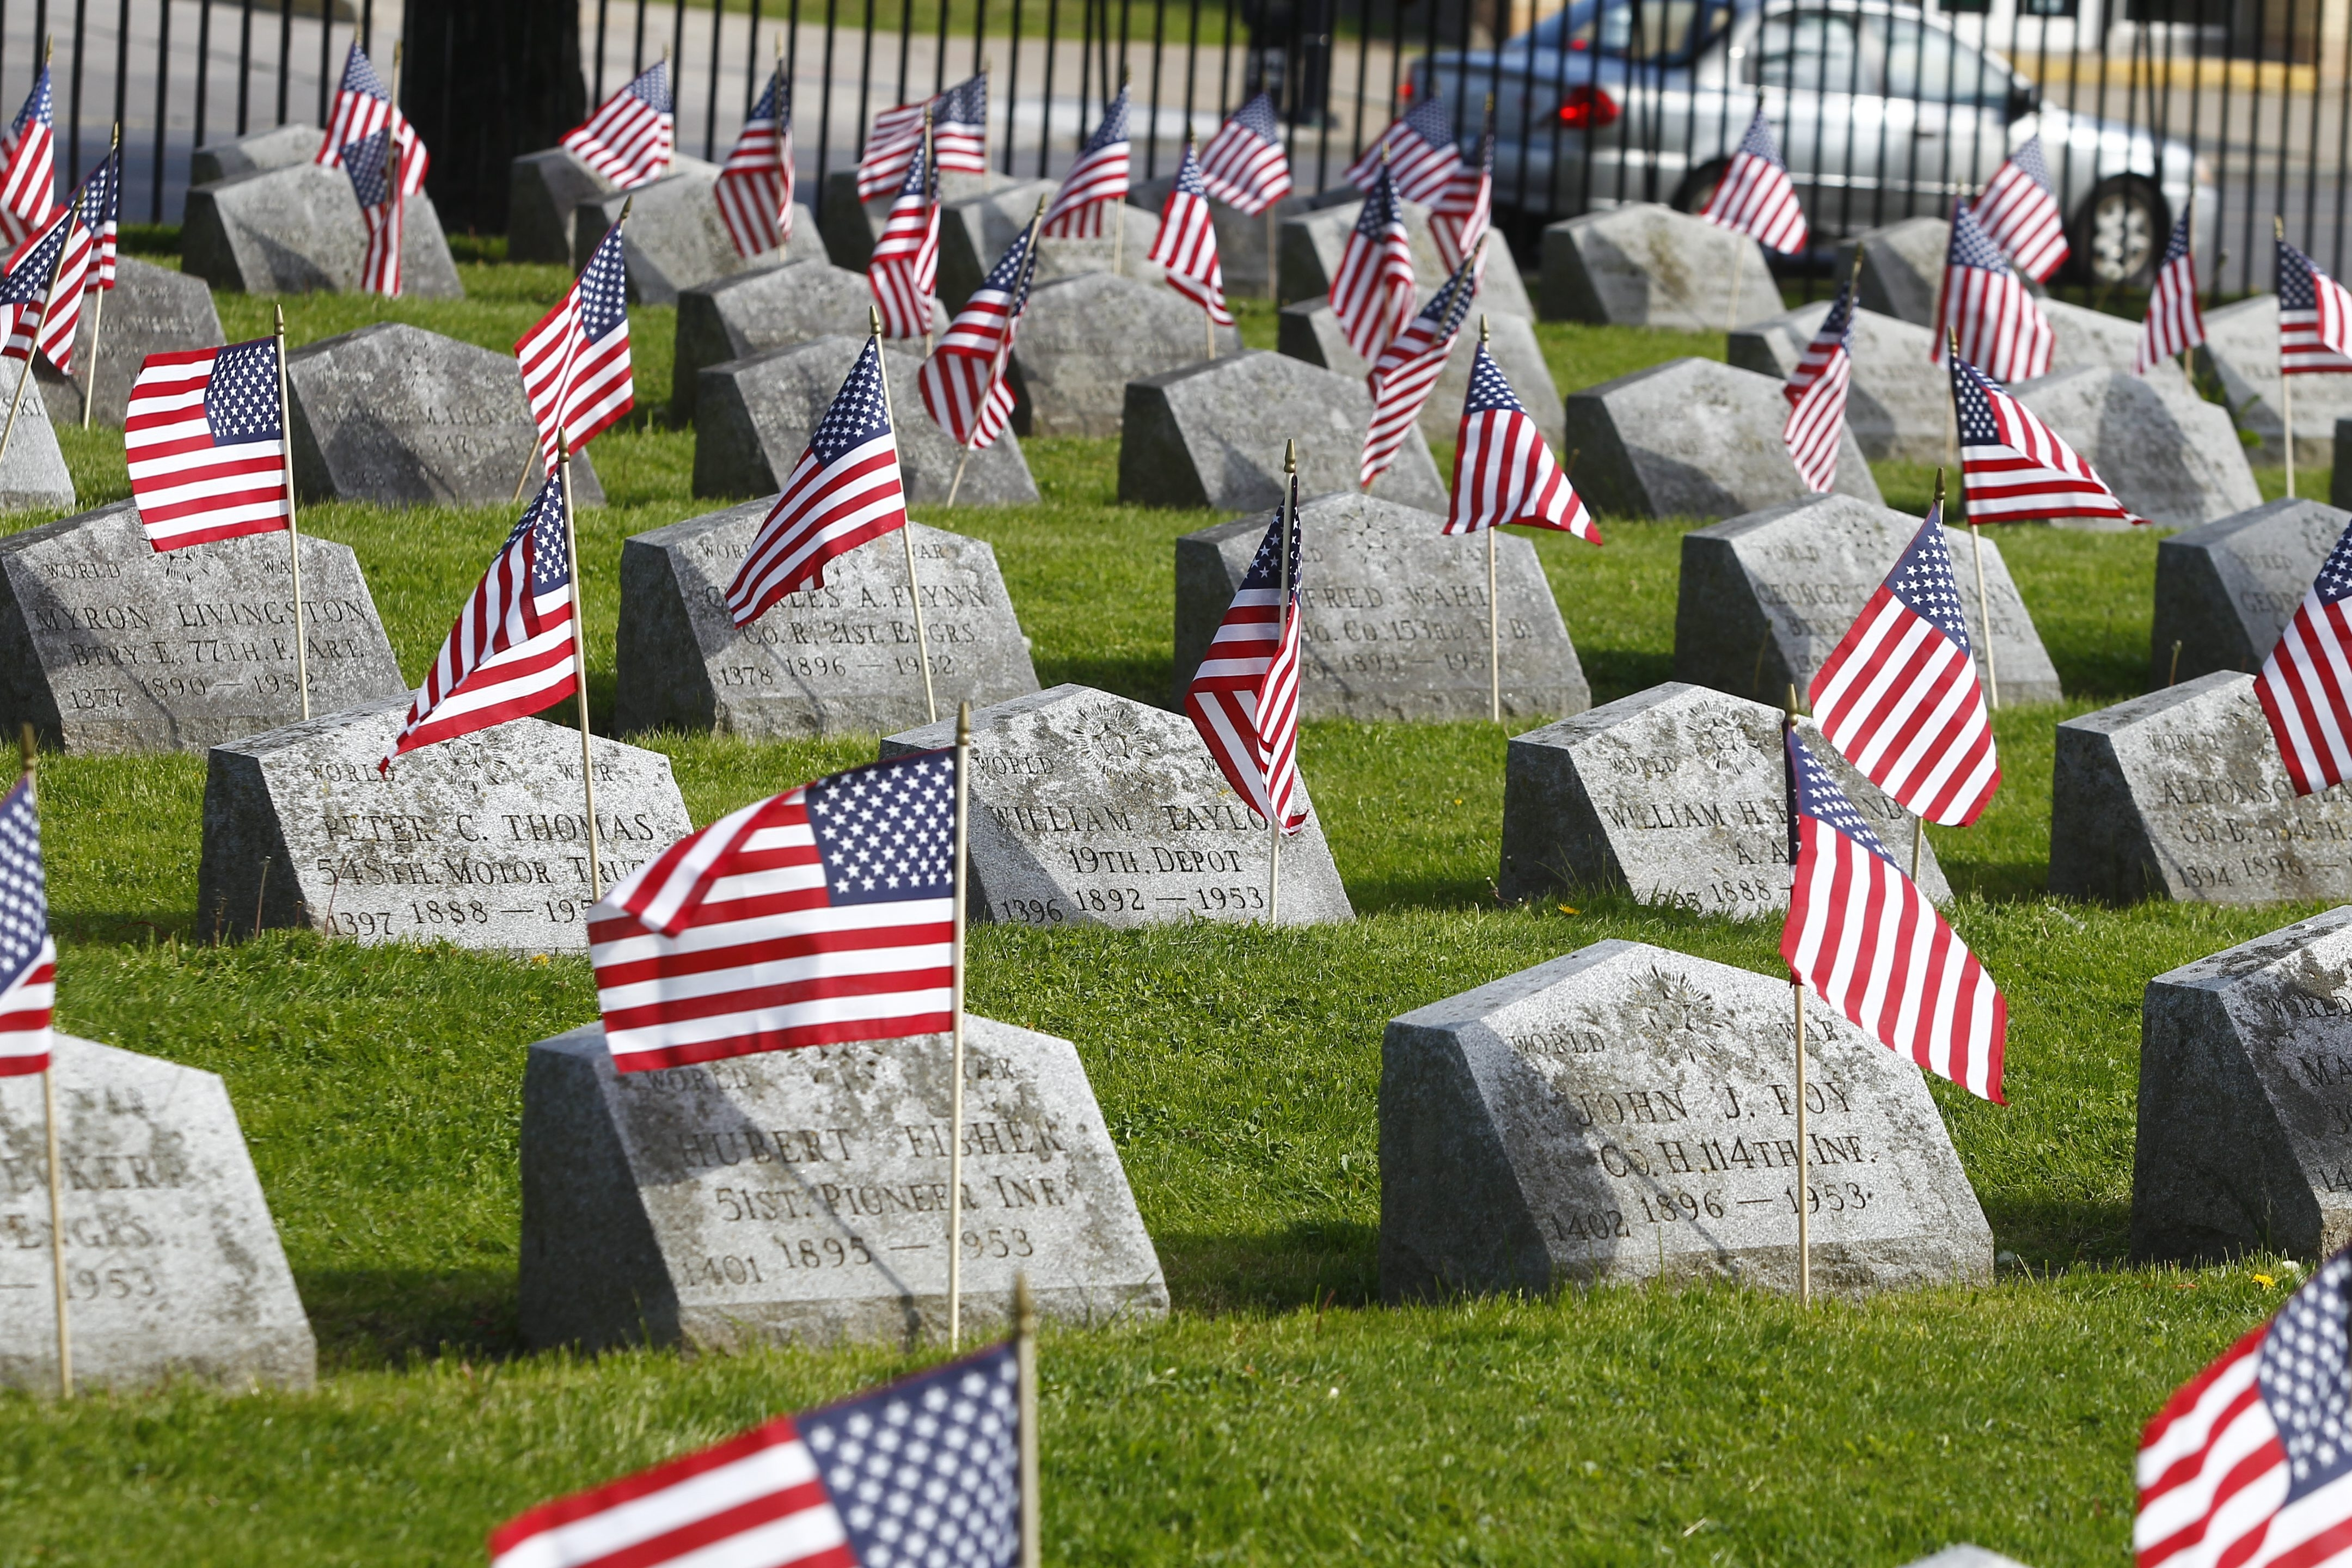 Flags fly in the breeze over the graves of fallen soldiers in the veterans' section of Forest Lawn in Buffalo on Monday. Sen. Charles E. Schumer announced today that the Department of Veterans Affairs has picked a 132-acre parcel of land in Pembroke to serve as Western New York Veterans' Cemetery.